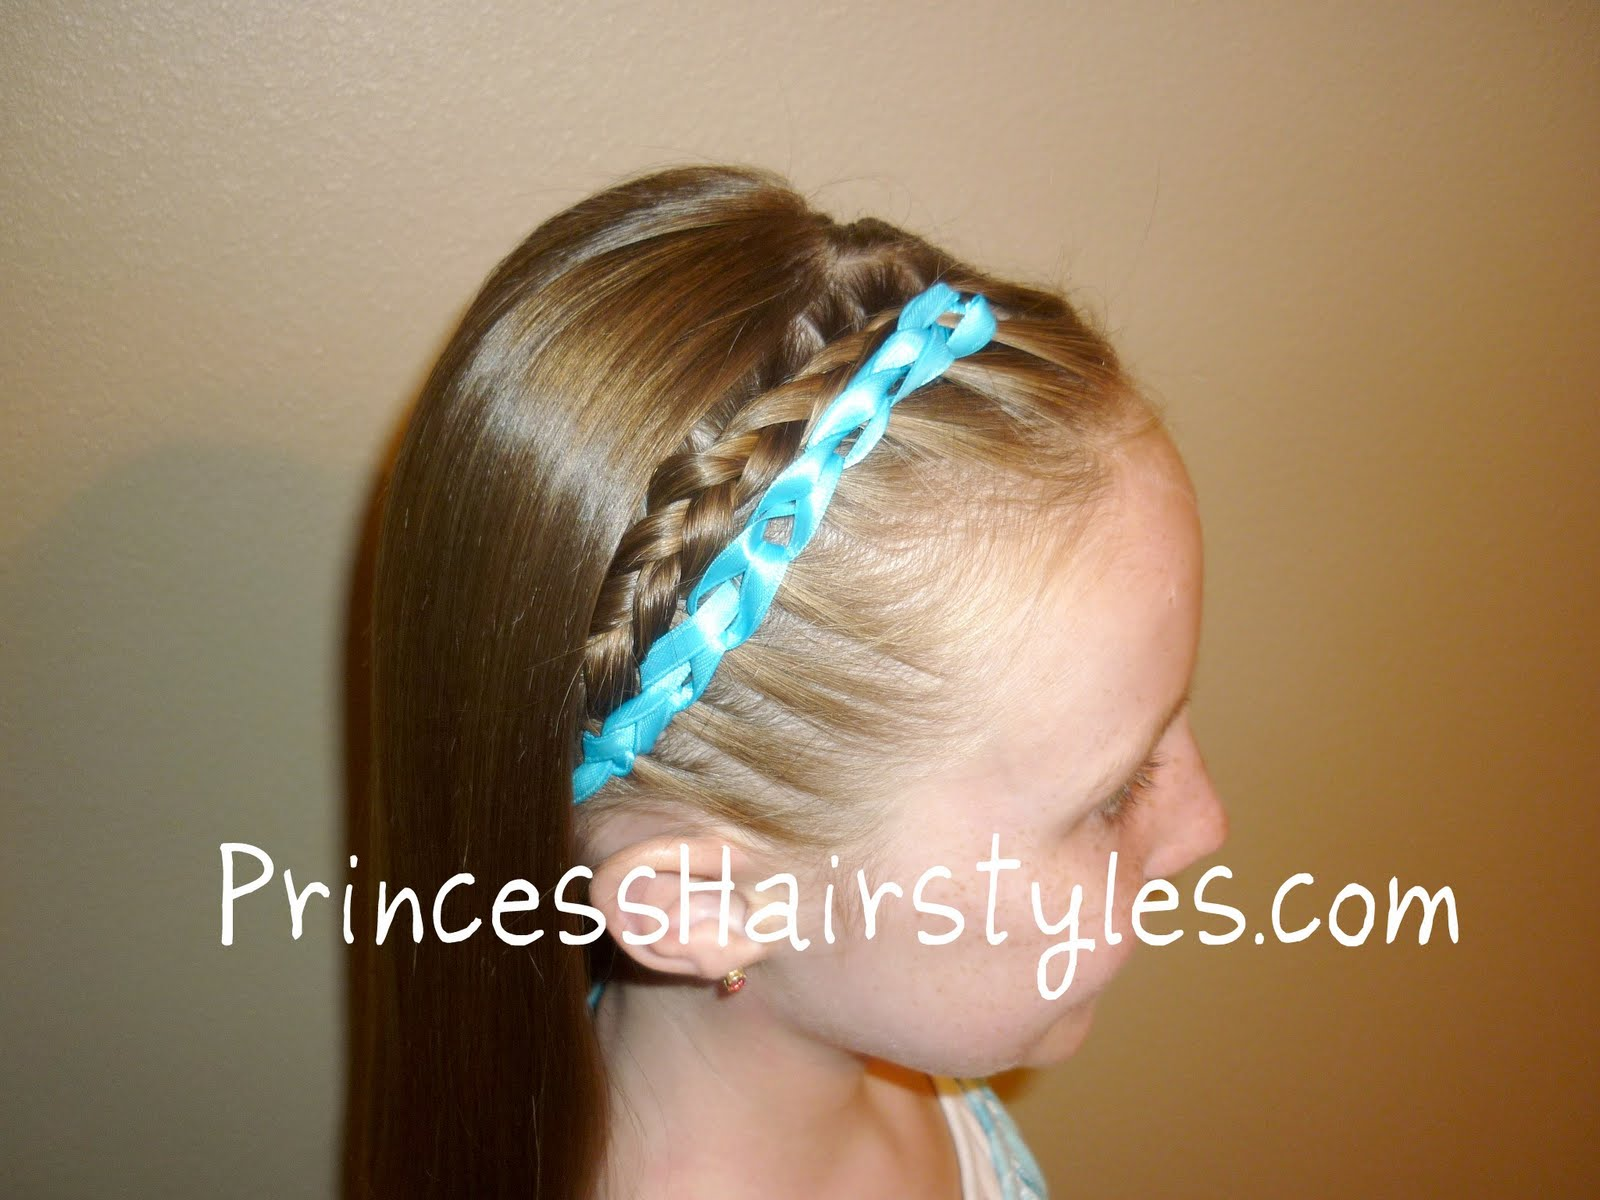 Crocheted Ribbon Braid Hairstyle - Hairstyles For Girls ...